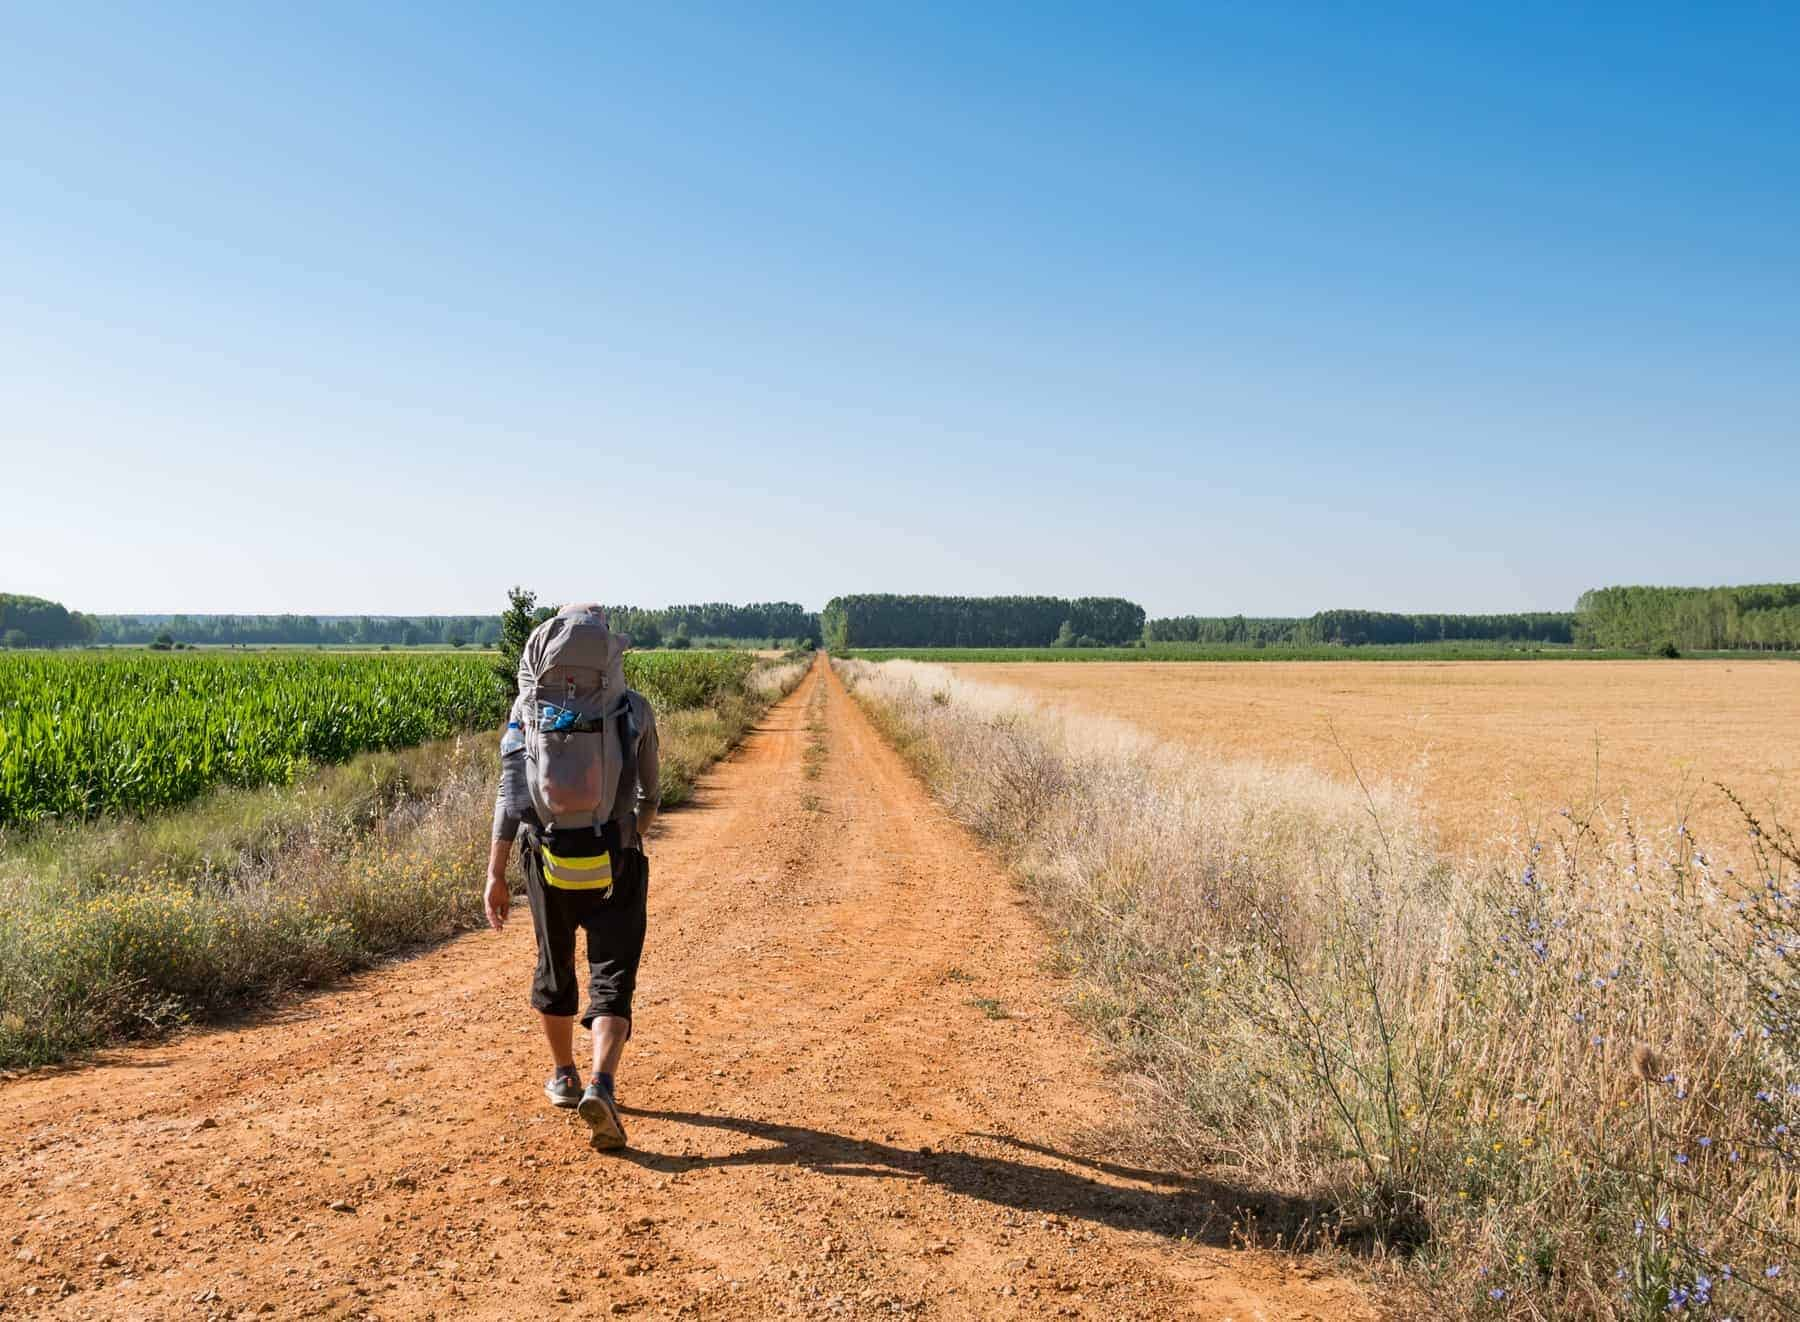 Lonely Pilgrim with backpack walking the Camino de Santiago in Spain